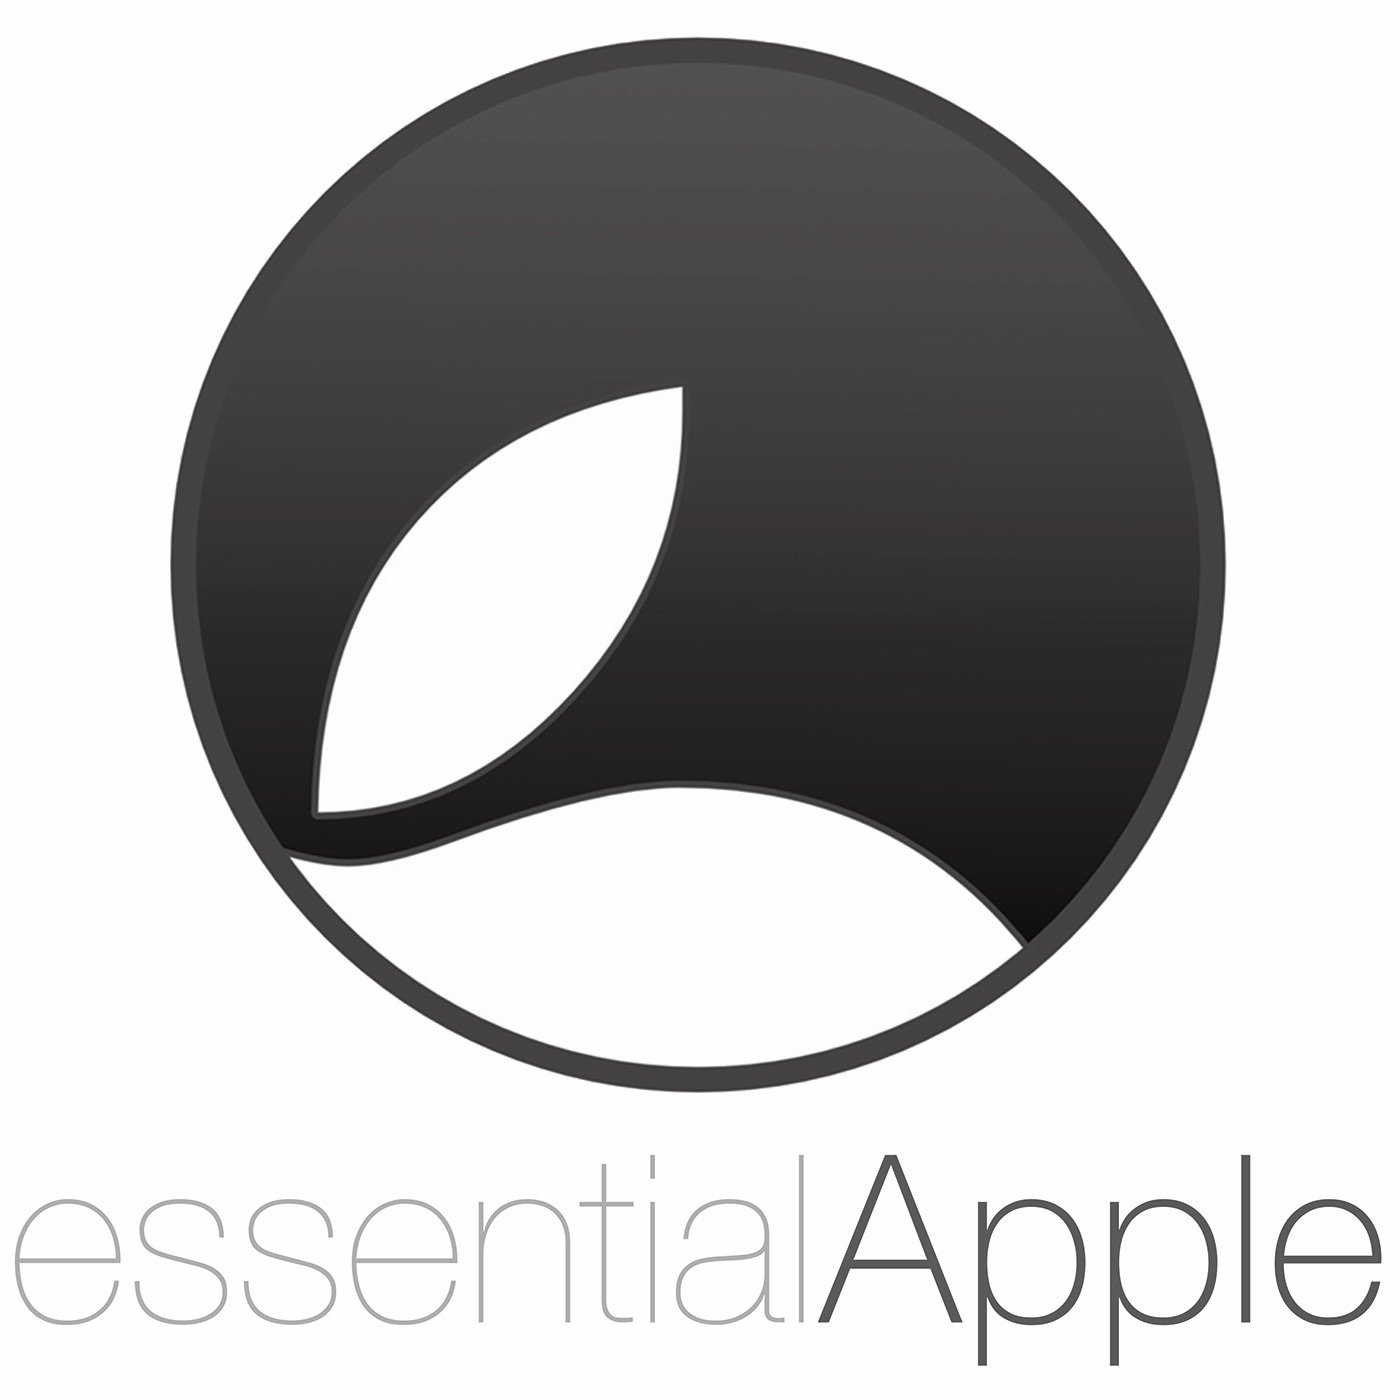 The Essential Apple Show By On Podcasts Zagg Messenger Universal 12 Inch Wireless Keyboard For Android